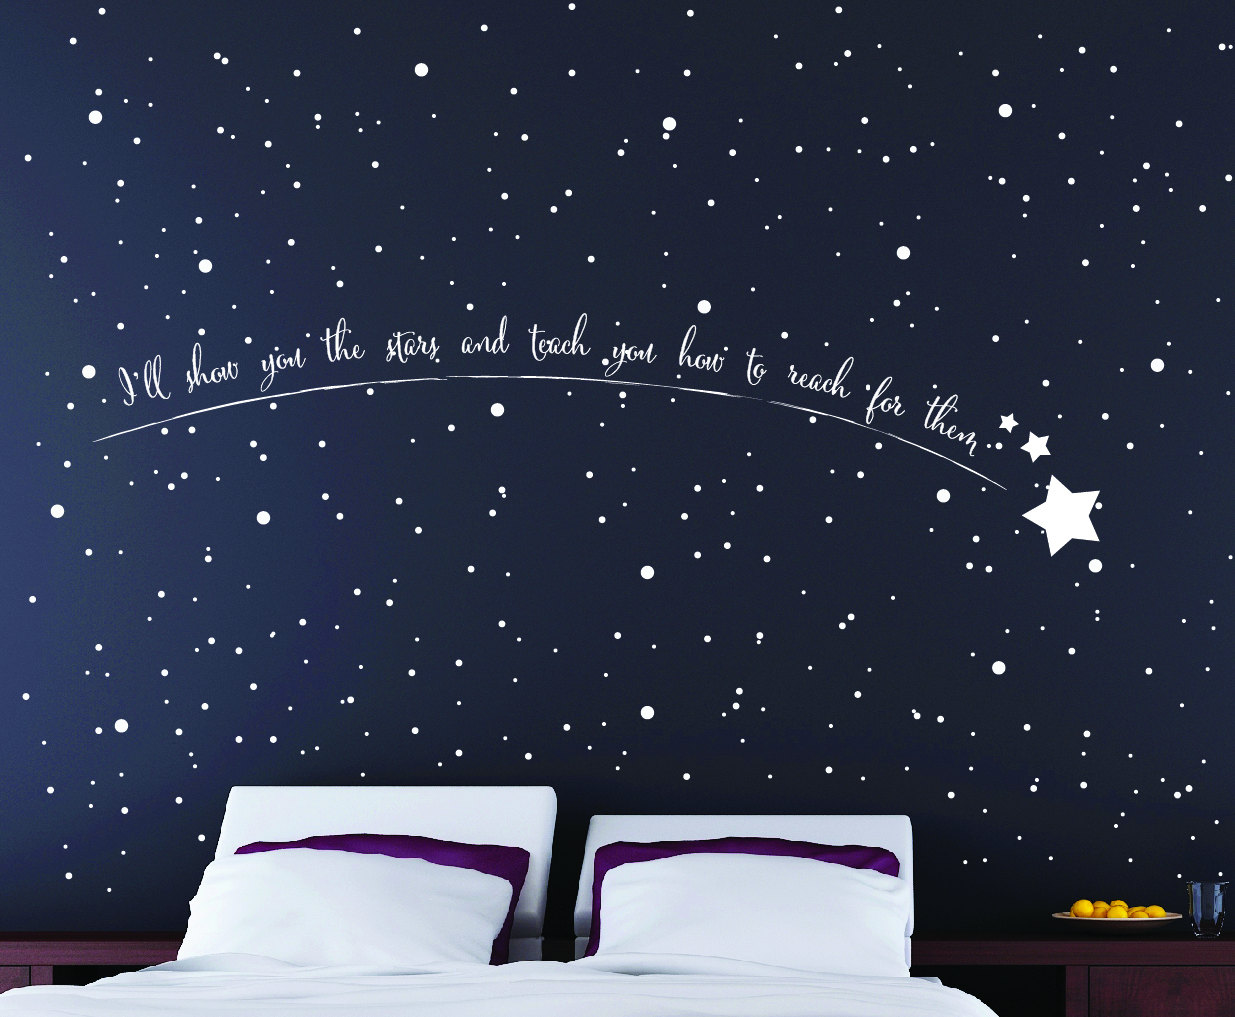 shooting star wall art star wall stickers star wall art star wall stickers star wallpaper. Black Bedroom Furniture Sets. Home Design Ideas